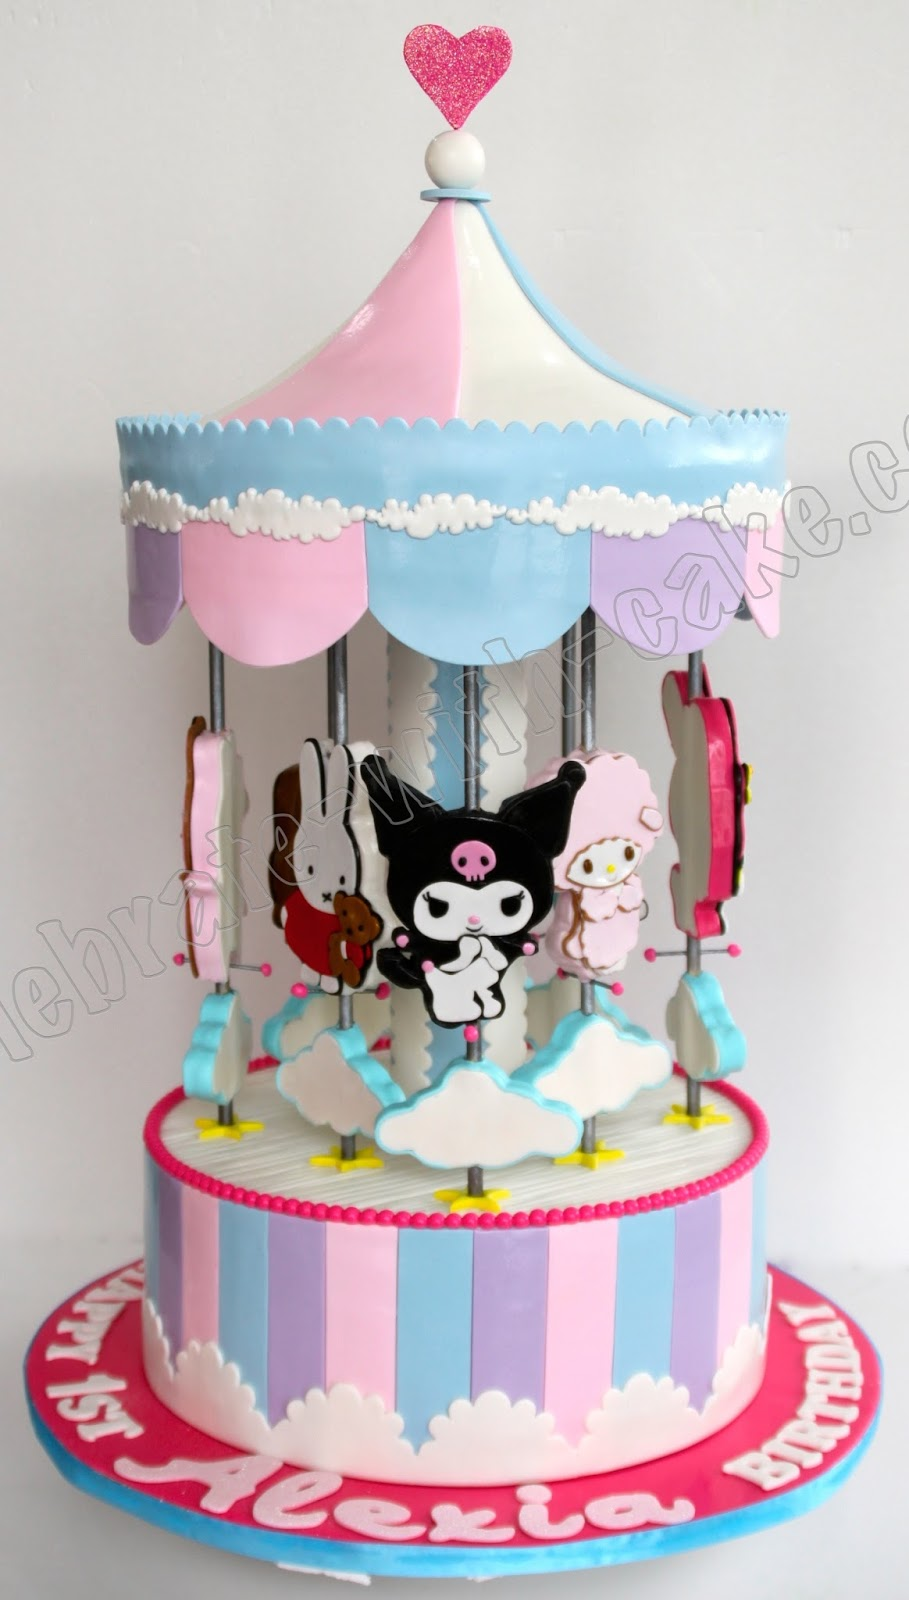 Celebrate with Cake Cartoon Characters Static Carousel Cake